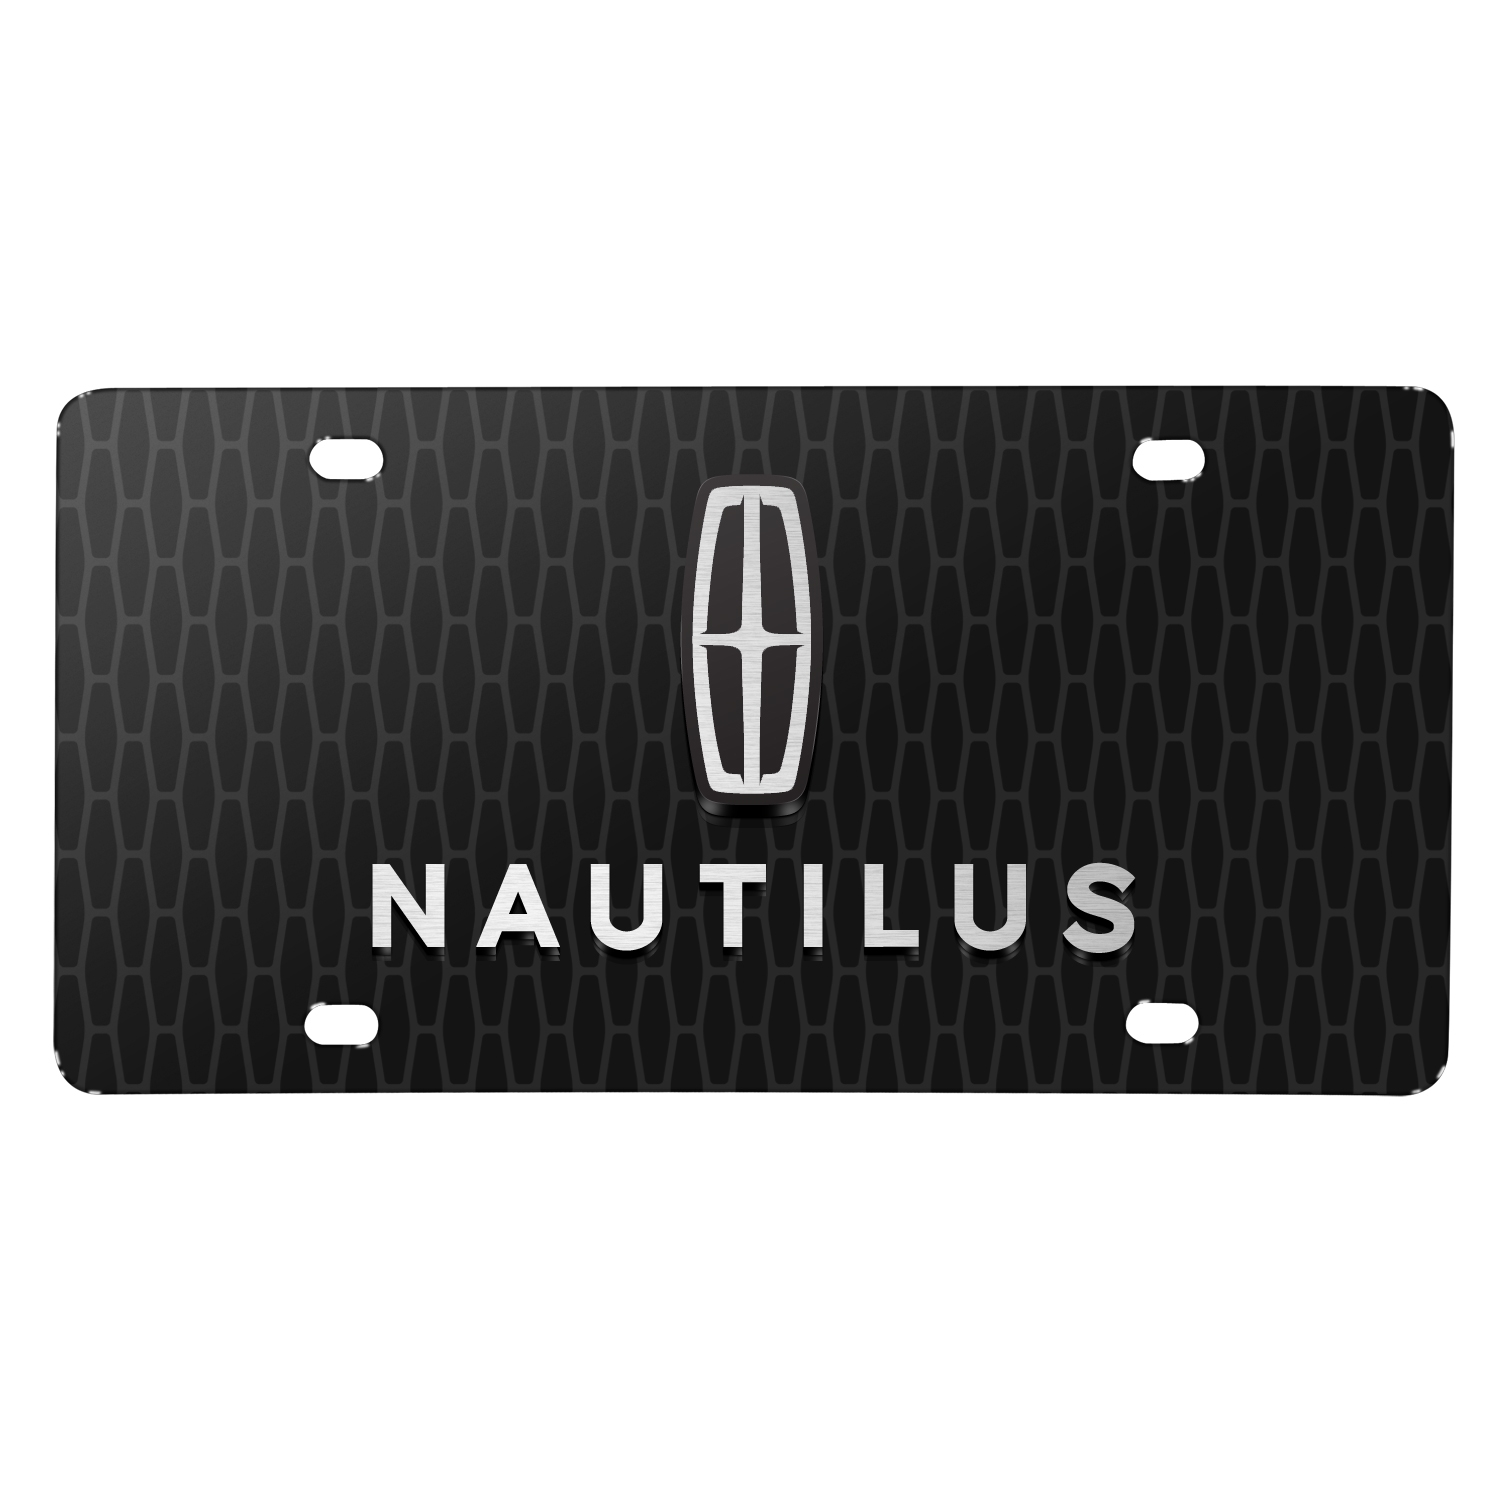 "Lincoln Nautilus 3D Logo on Front Grill Pattern 12""x6"" Black Acrylic License Plate"